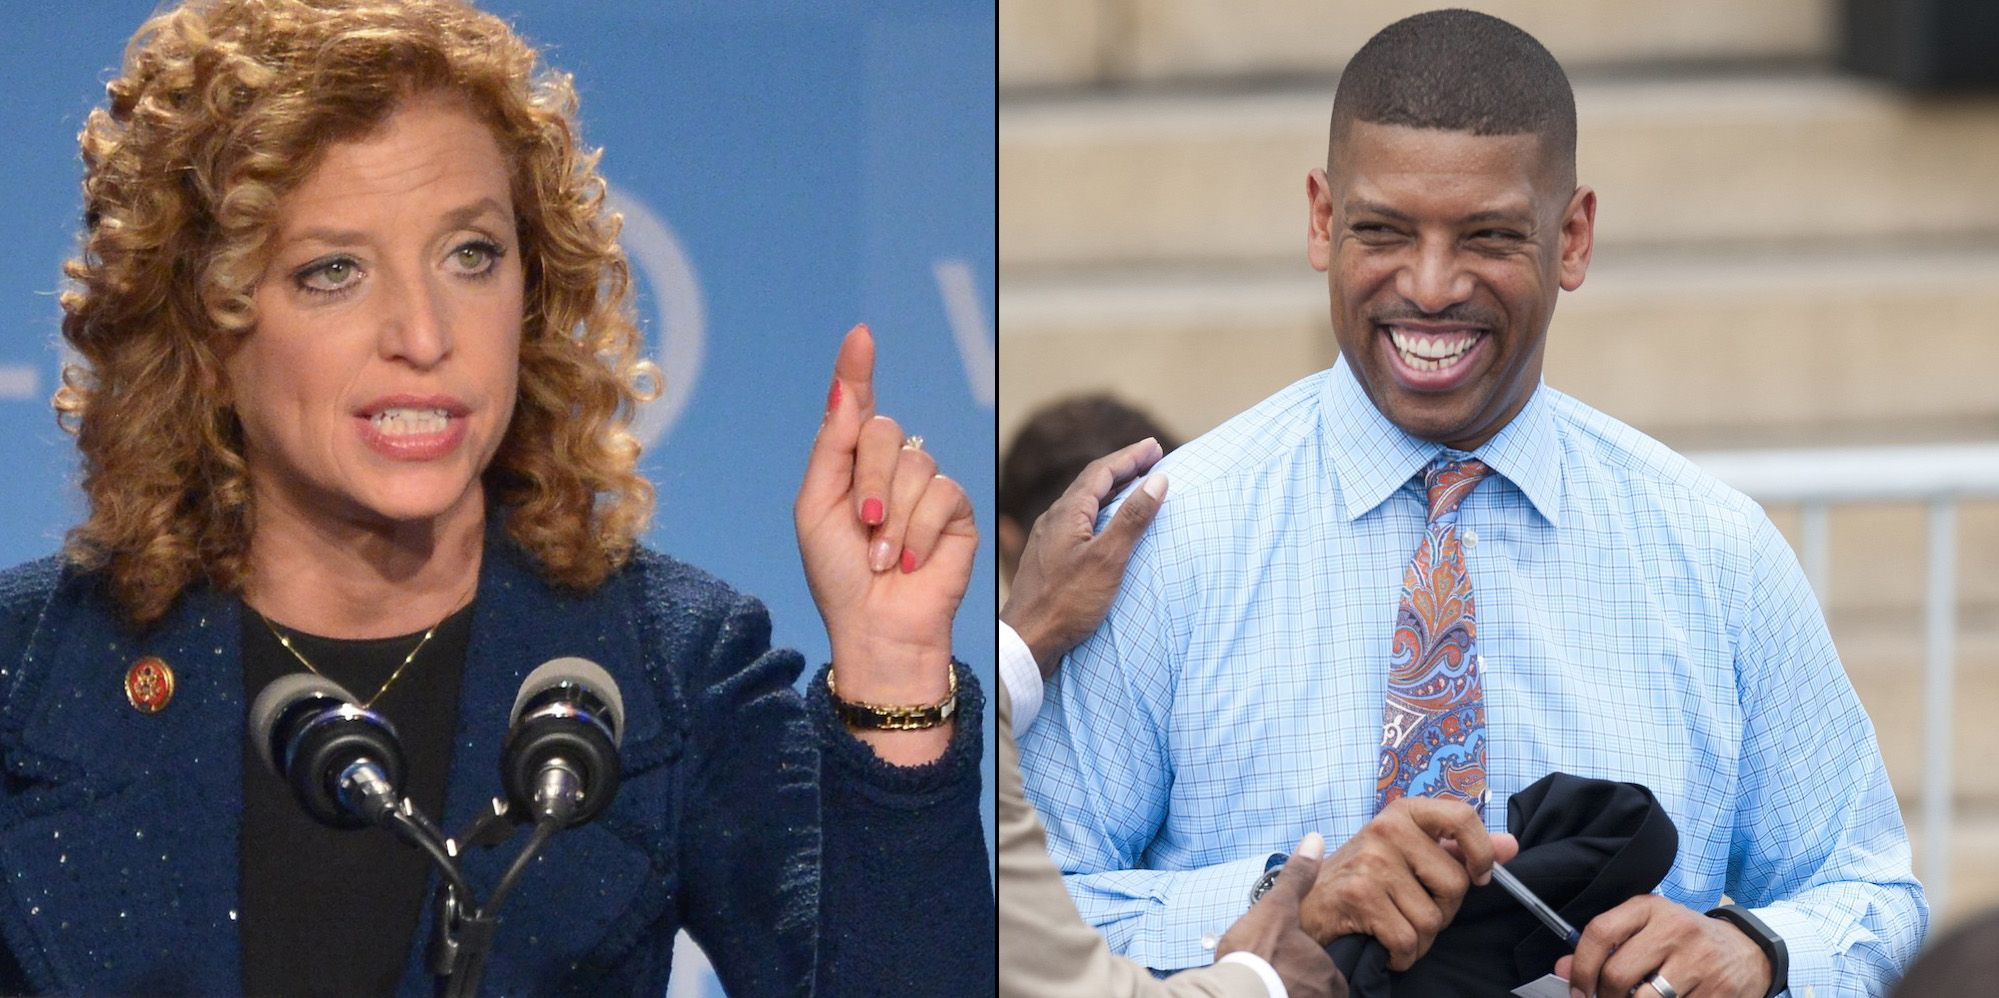 These Democrats Need to Stop Behaving Like Old School Republicans